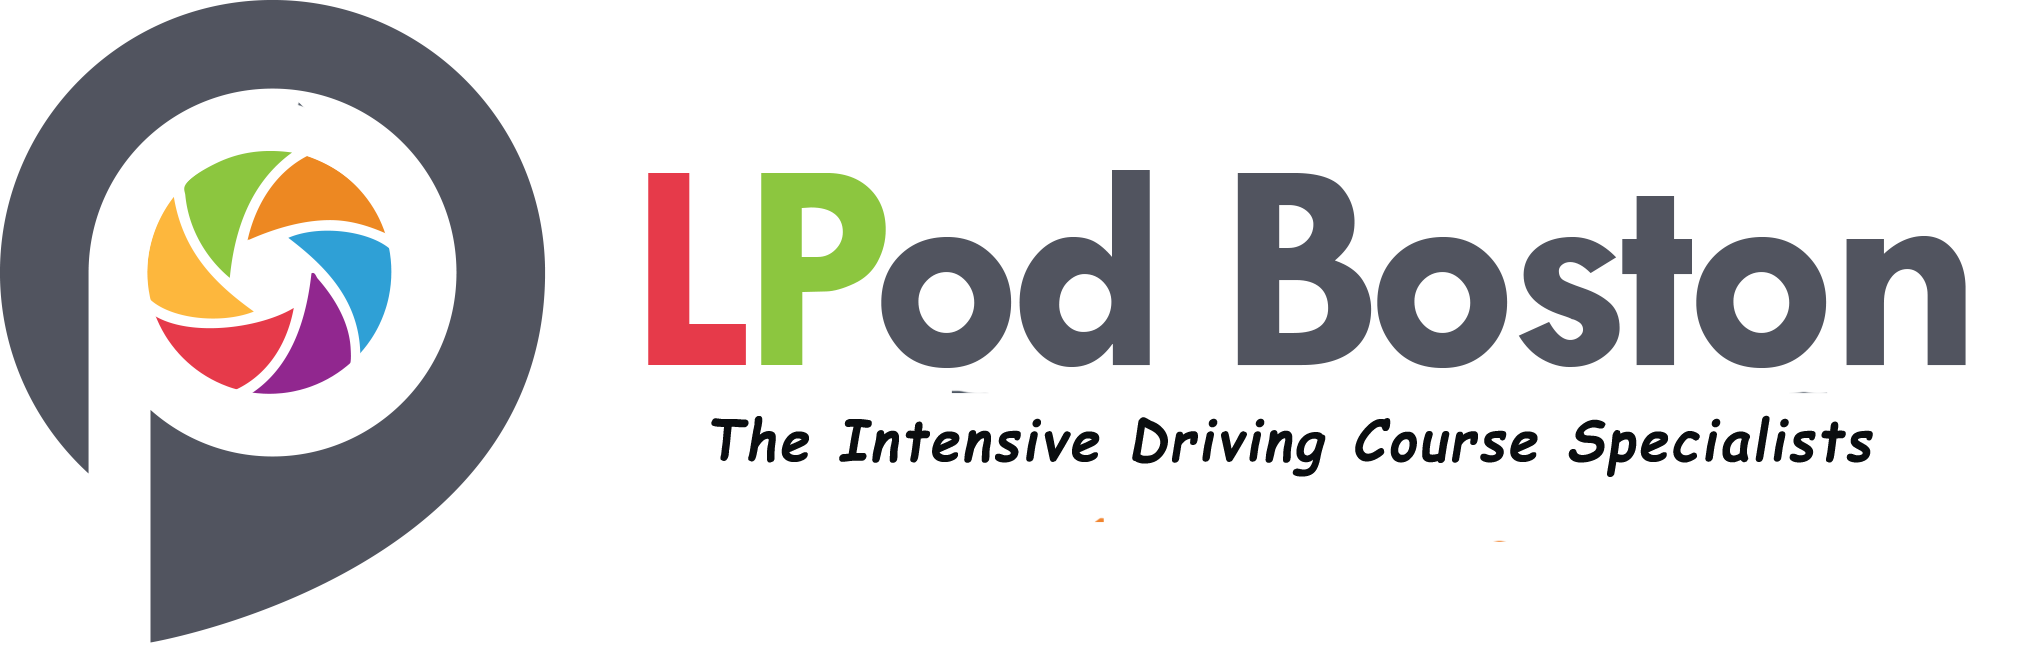 intensive driving courses boston, one week driving courses bosto, fast pass driving courses boston